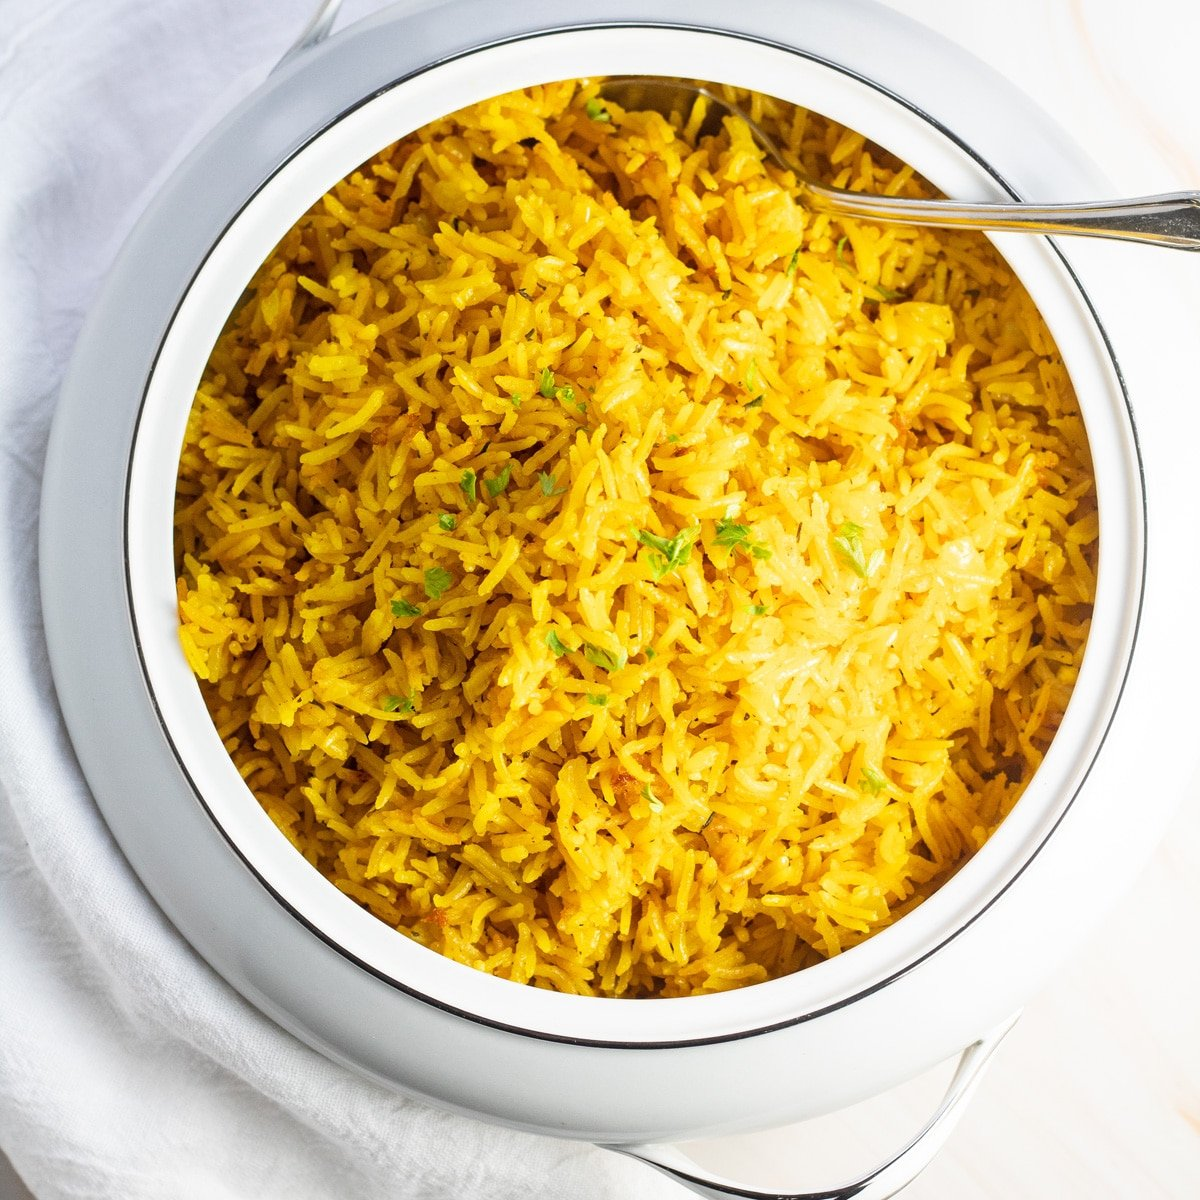 Turmeric rice in serving dish on light background.